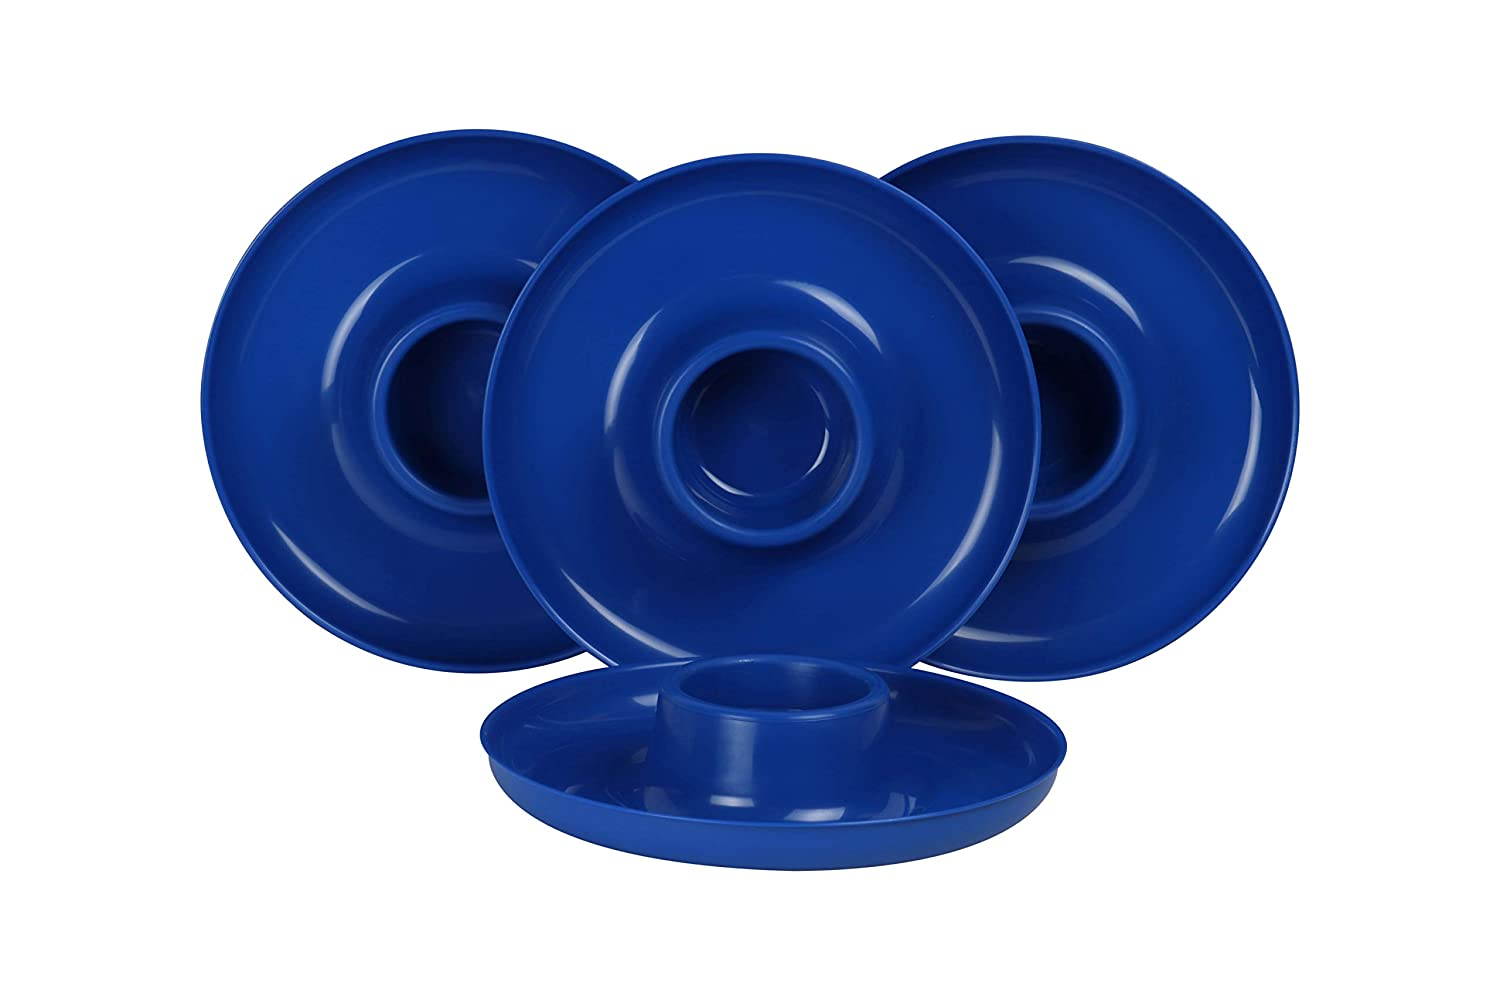 GreatPlate GP-BLU-4PK AZ Blue Plate 4-Pack, 4 Blue GreatPlates, Food Tray and Beverage Holder, Dishwasher Safe, Microwave Safe, Made in USA, Picnics, Parties, Tailgates, Appetizers, Great for Kids